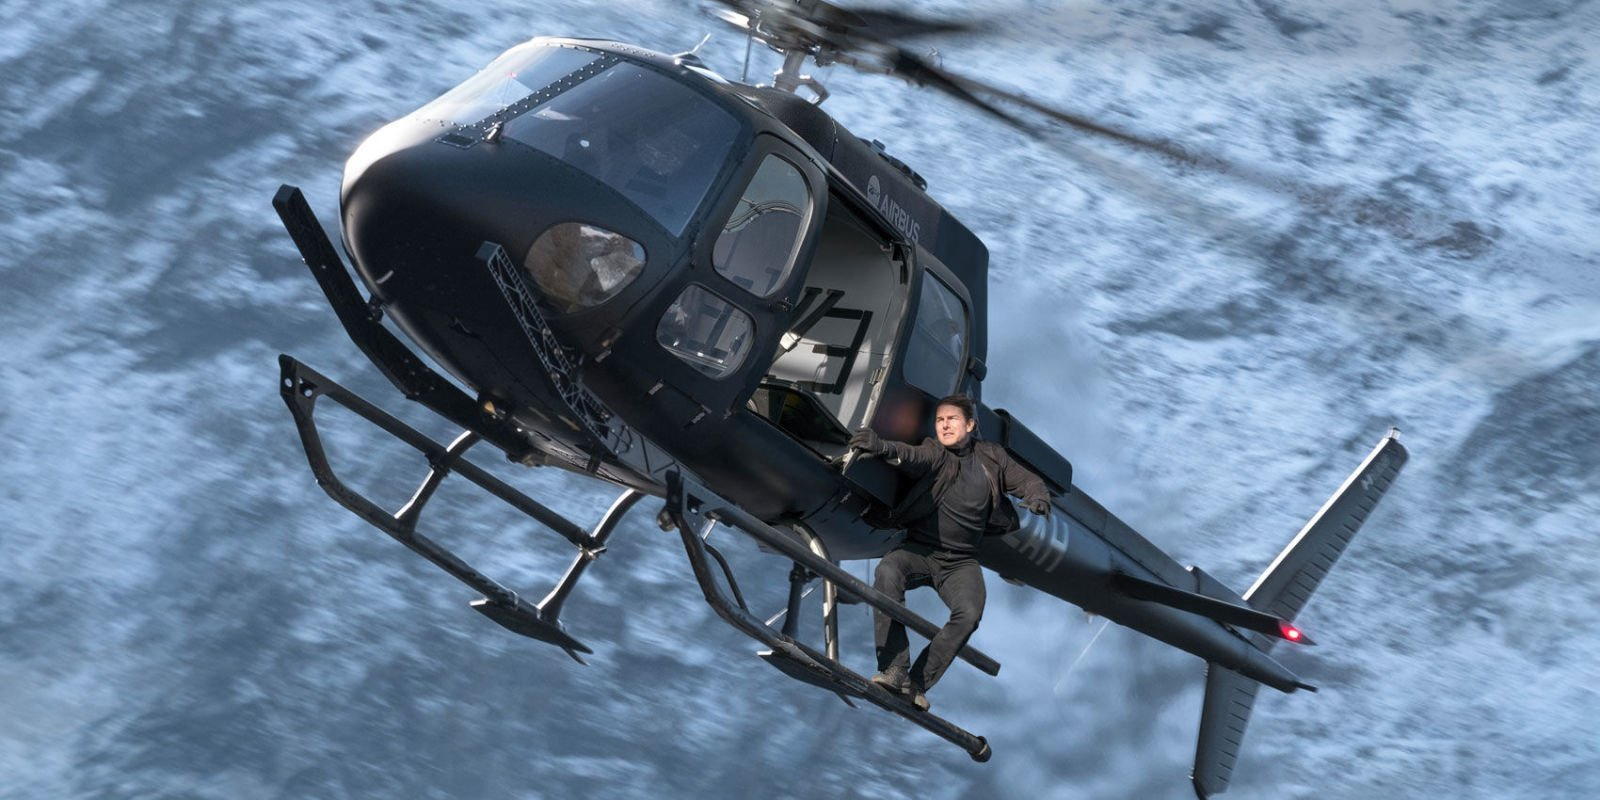 Mission: Impossible 6 teaser lands ahead of the trailer on Sunday